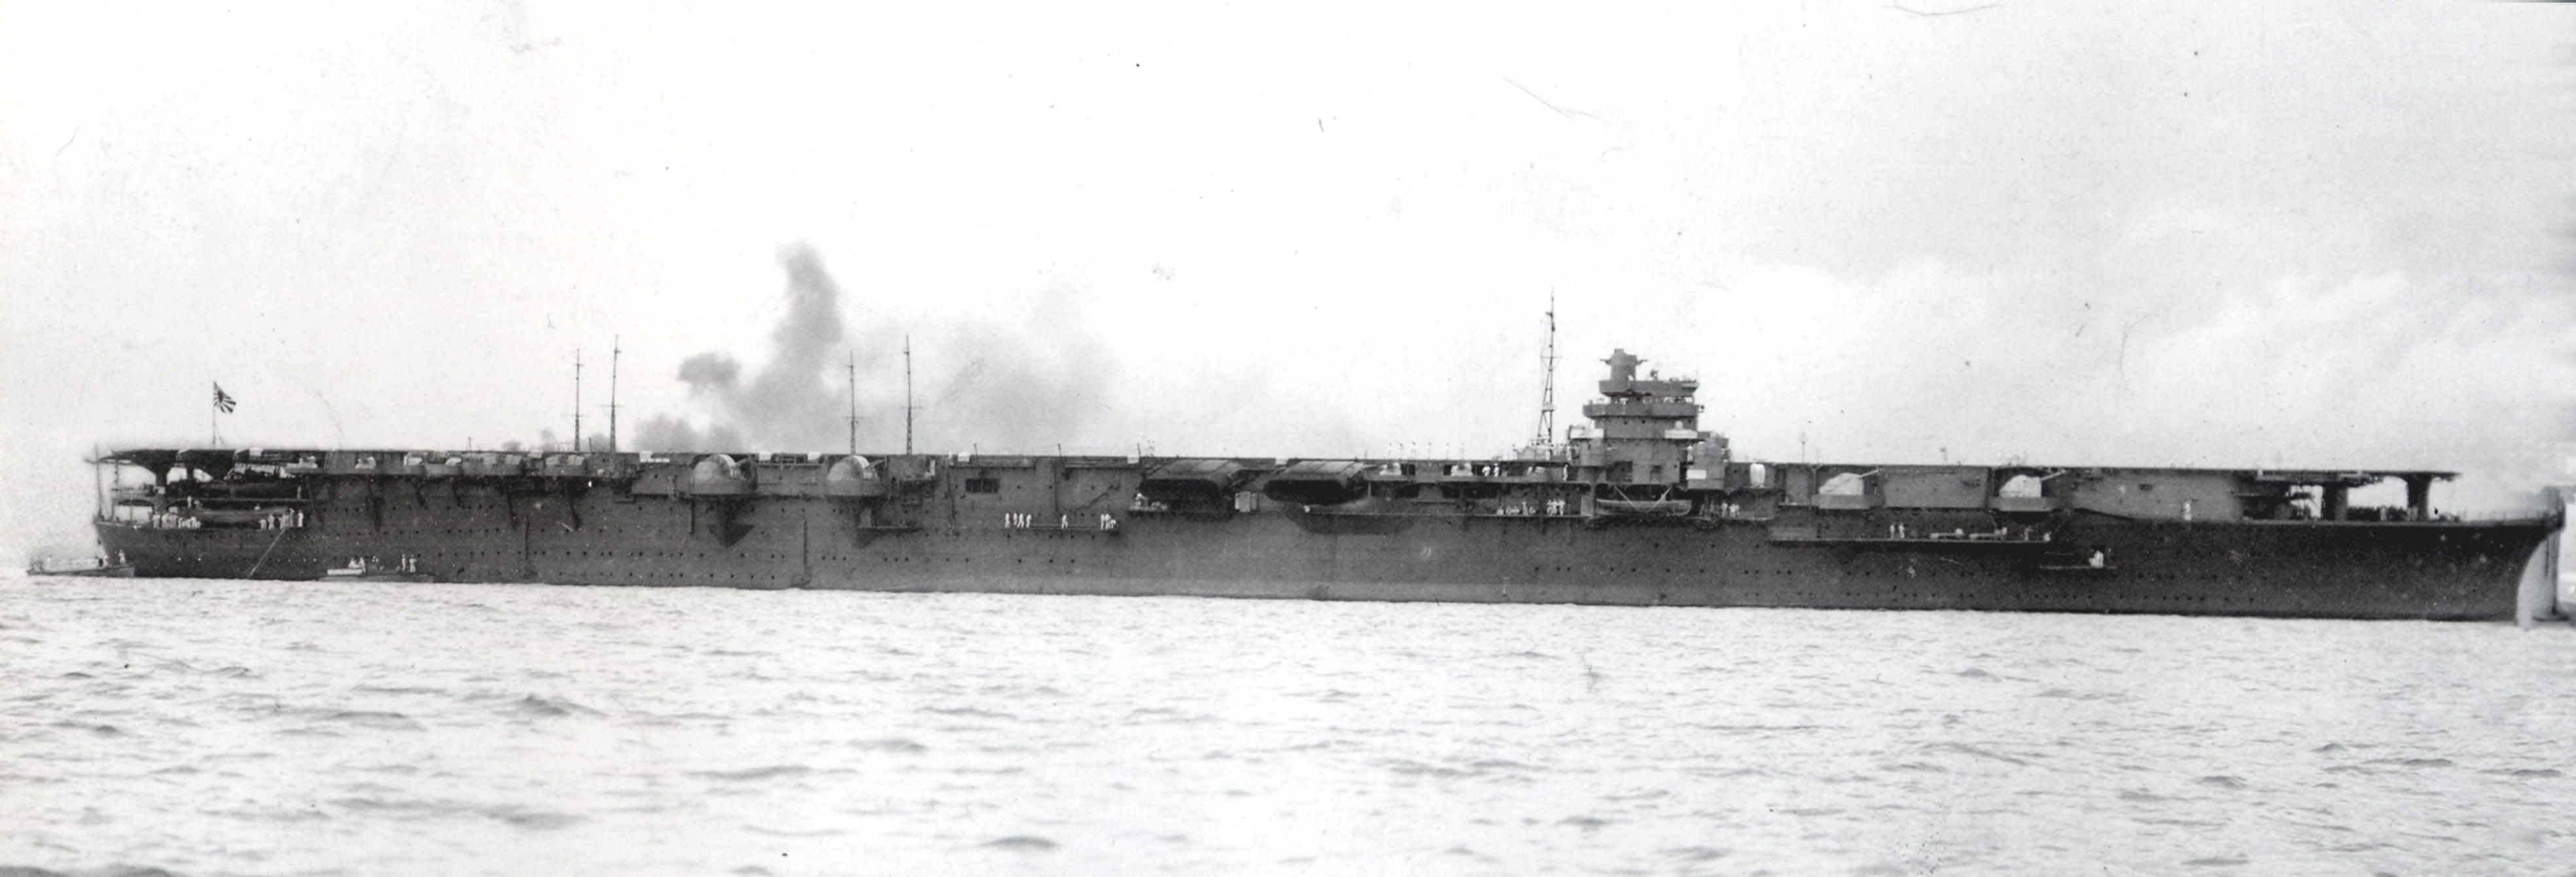 http://upload.wikimedia.org/wikipedia/commons/0/00/Japanese_aircraft_carrier_shokaku_1941.jpg